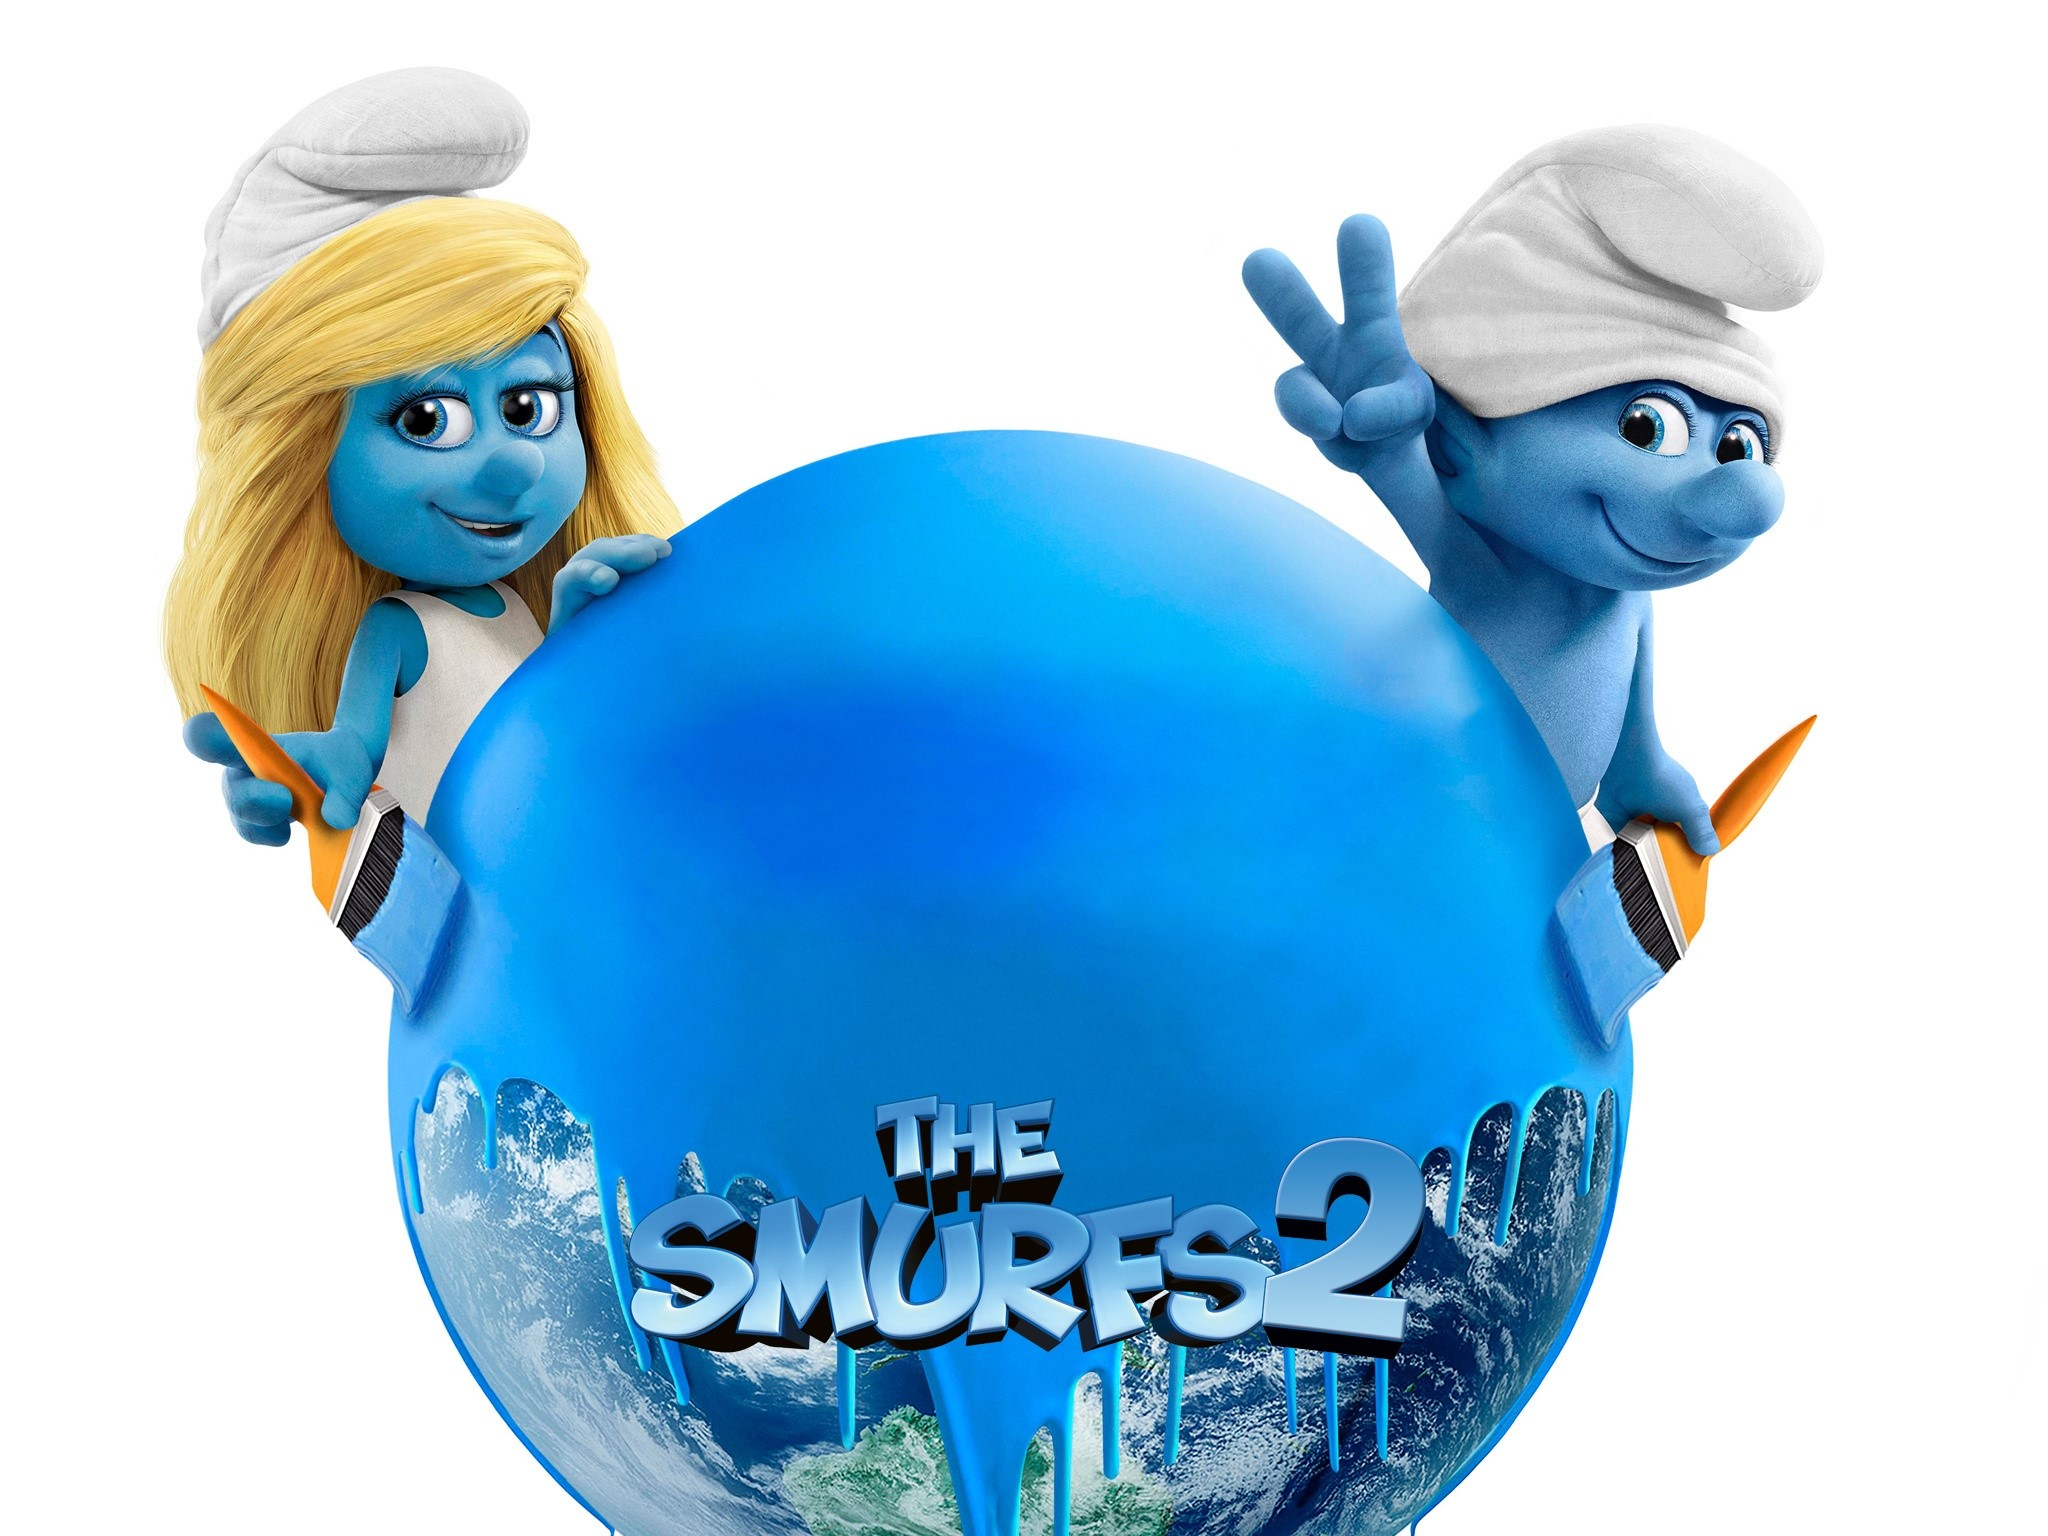 Wallpaper Smurfs 2